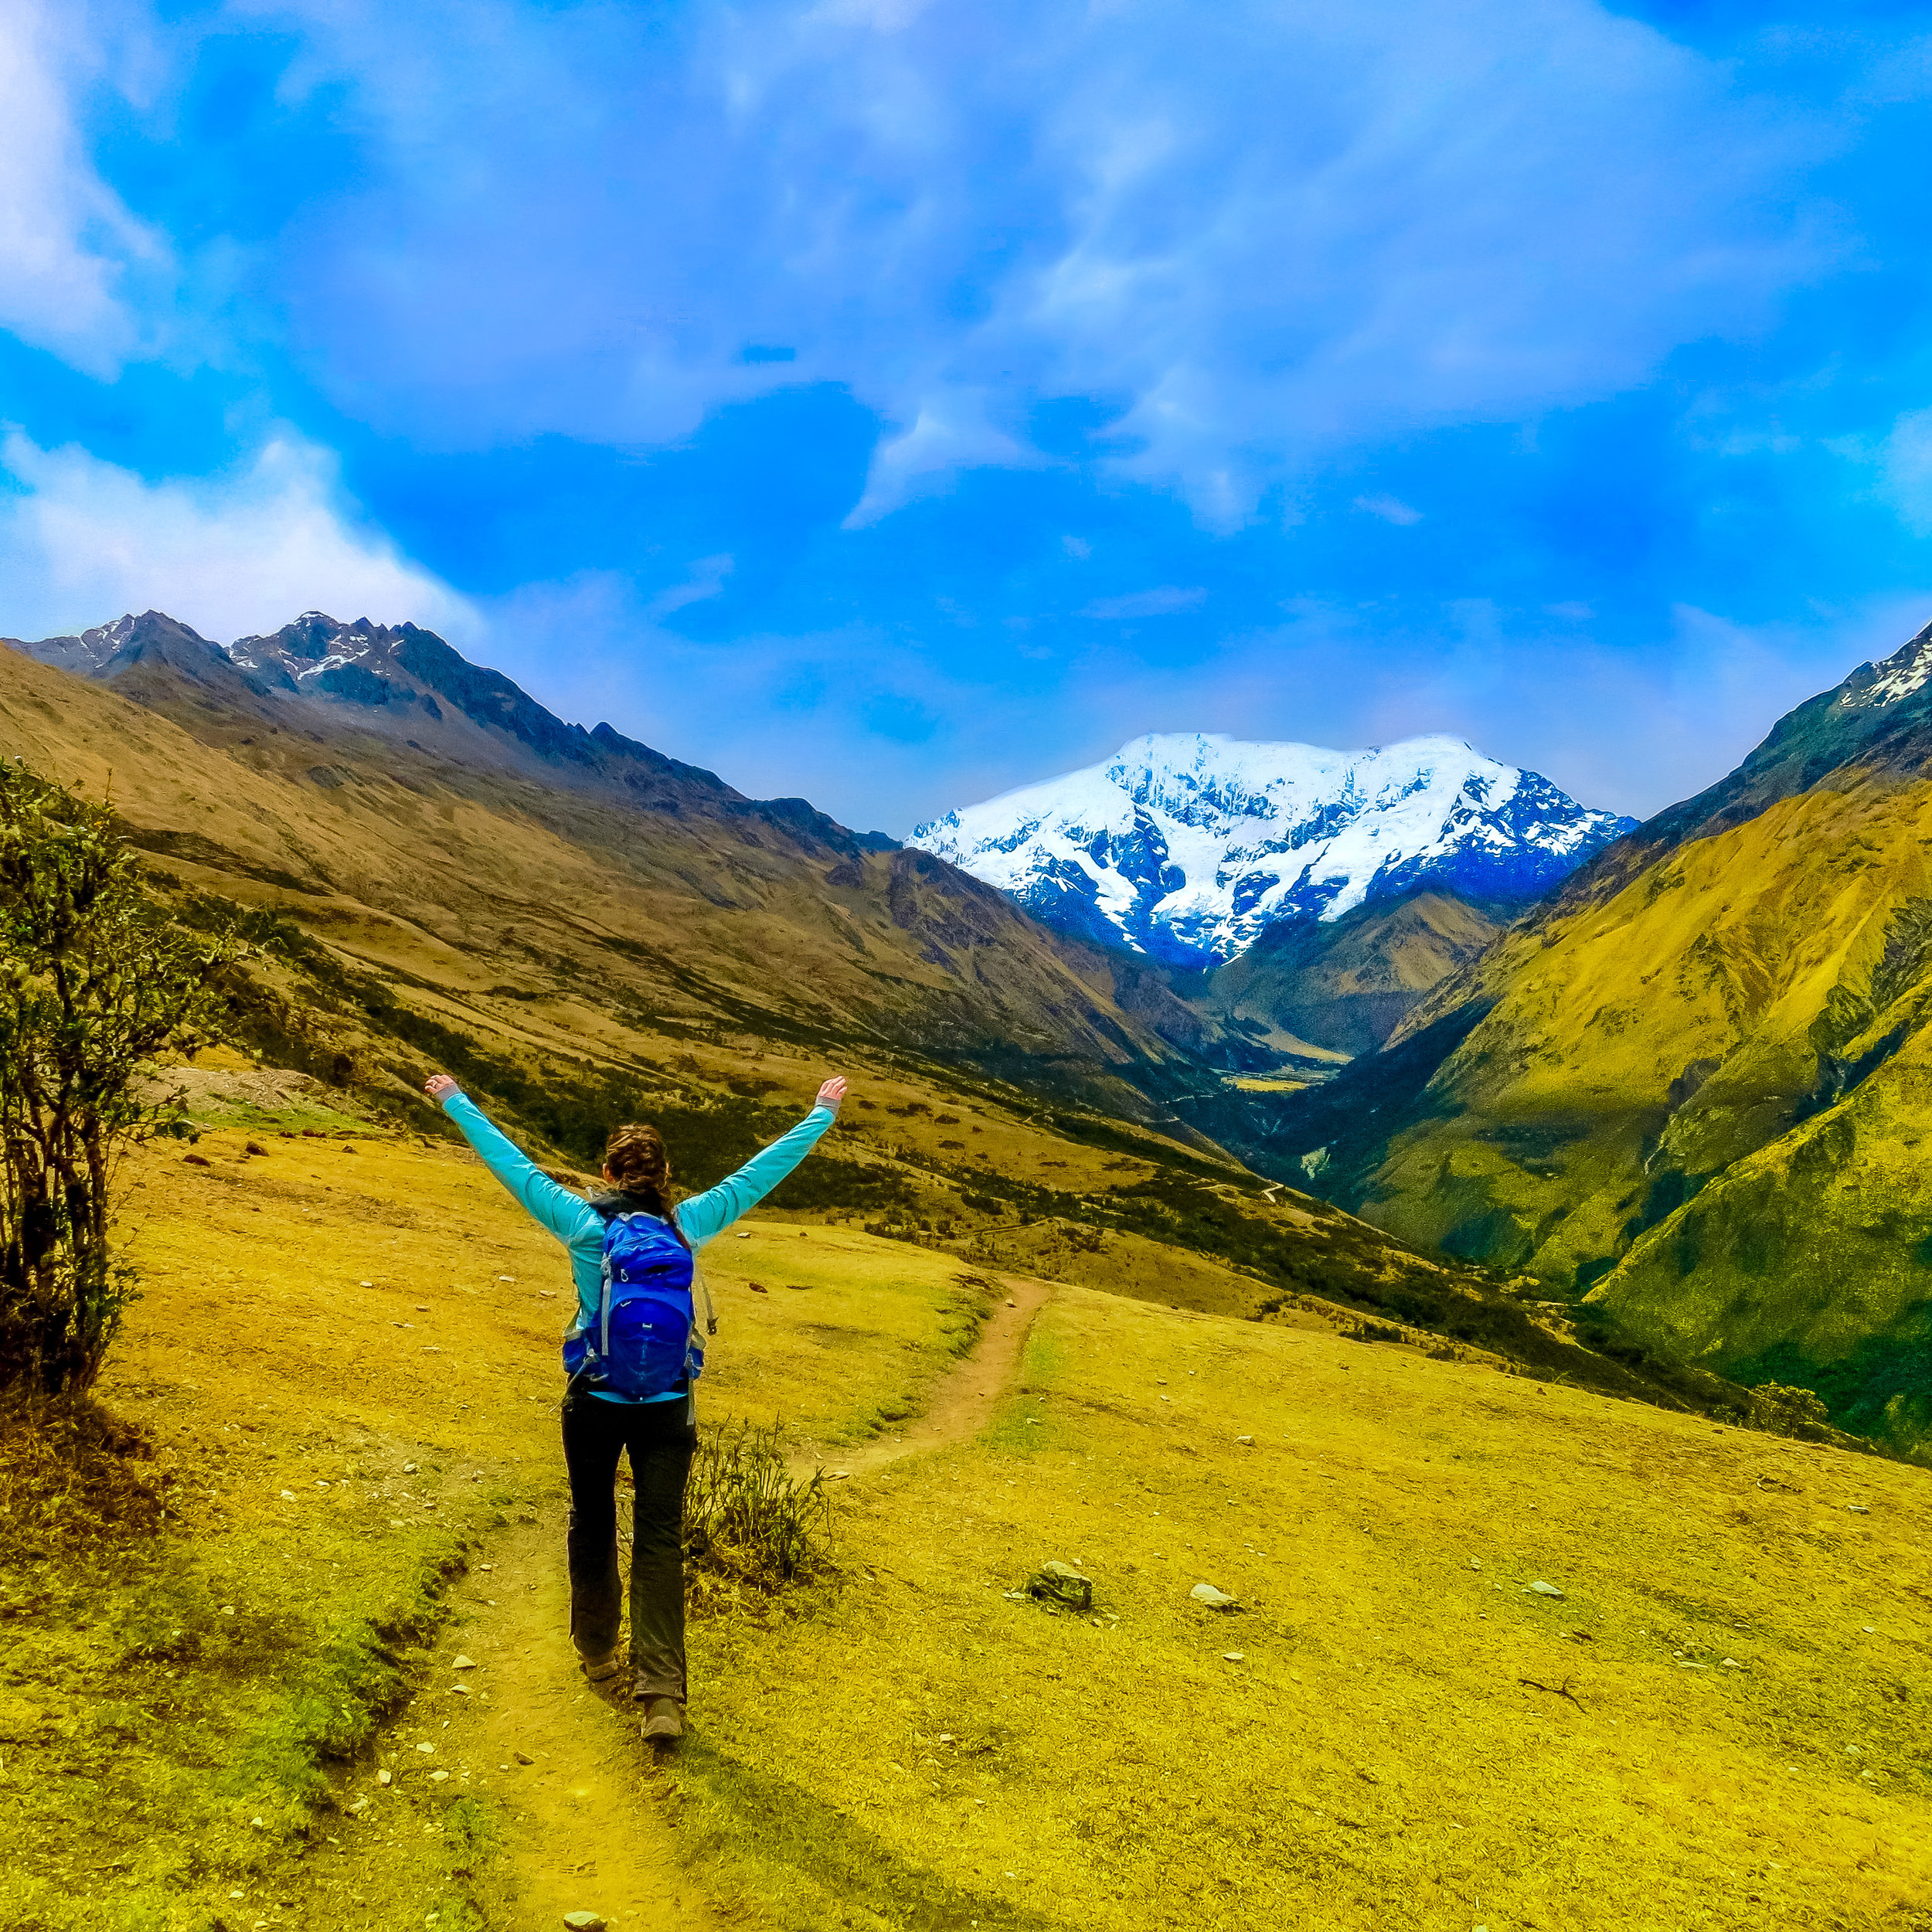 Forget Bucket Lists - Make This Your Top Travel Goal